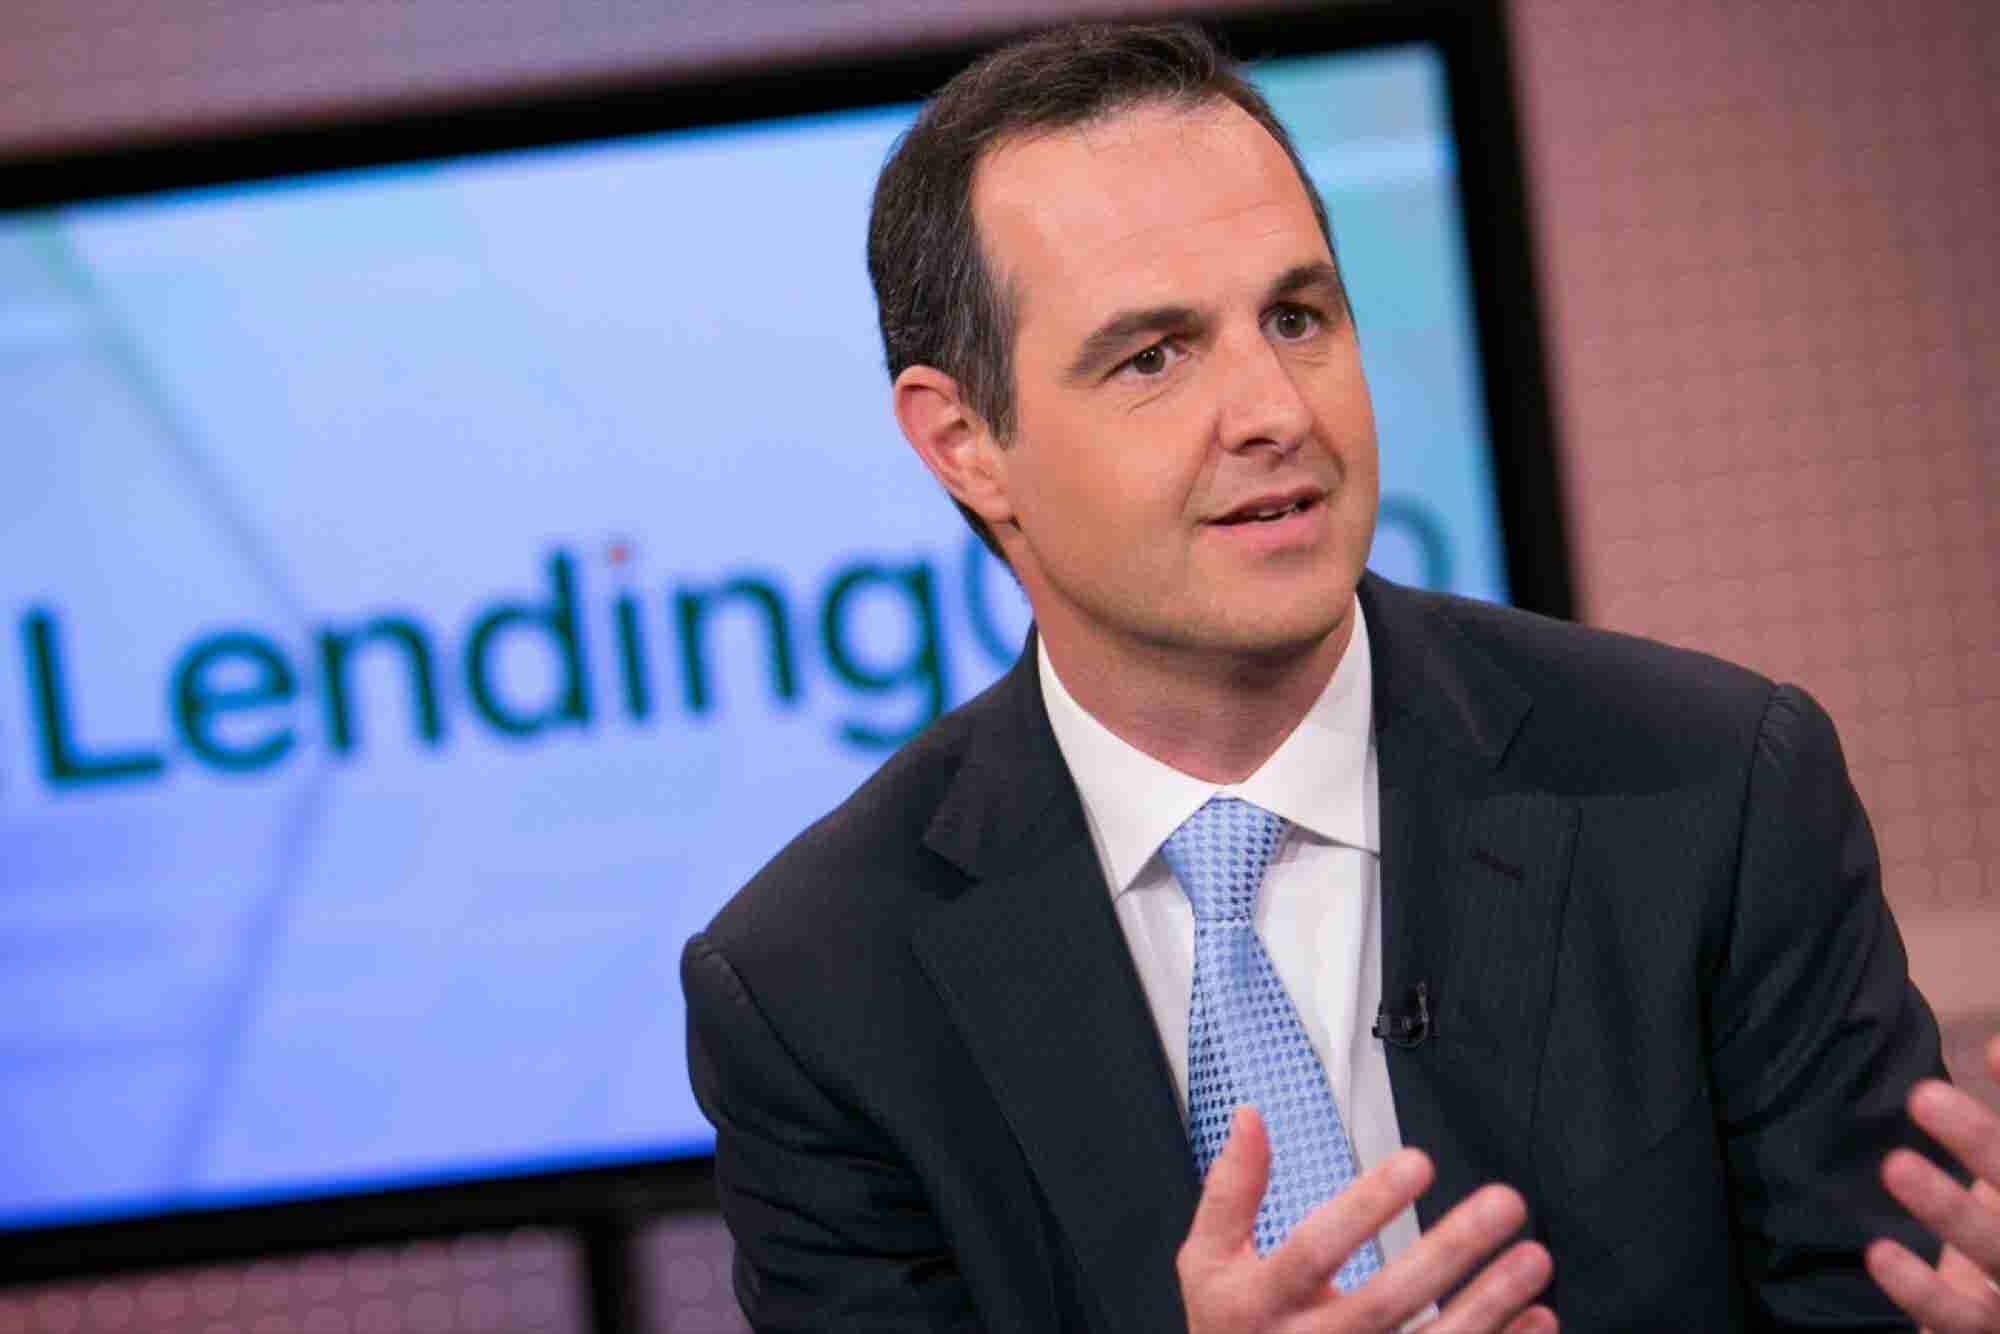 Lending Club's CEO Resigns After Internal Probe, Shares Plummet